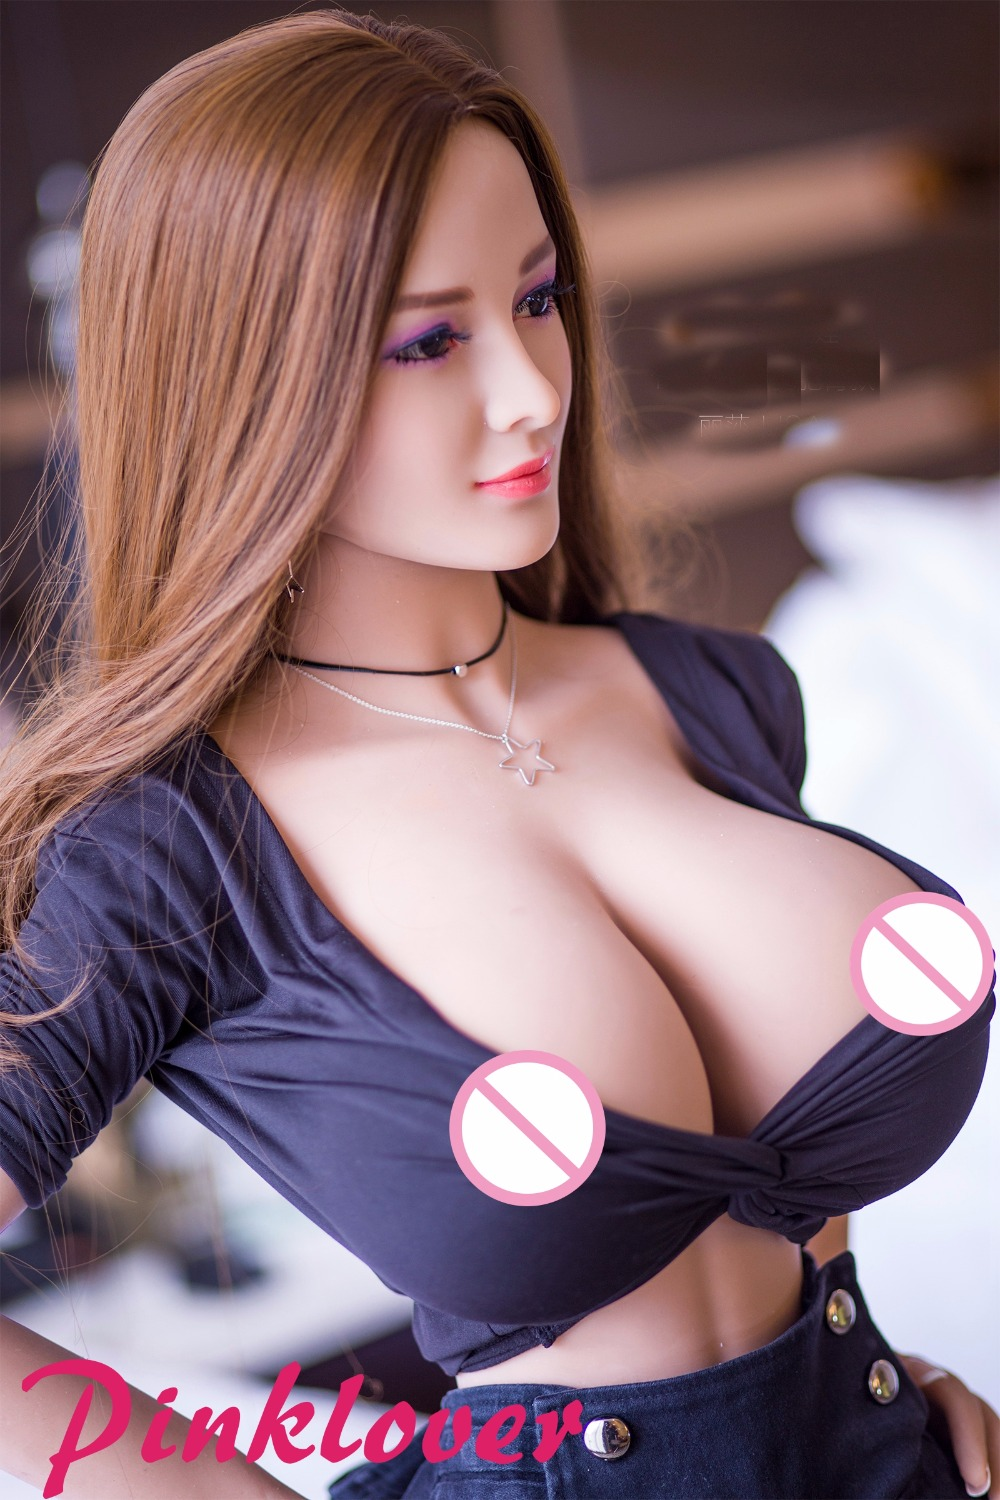 Pinklover Thin Waist Big Breasts 153cm Sex Dolls Real TPE Silicone lady For Men